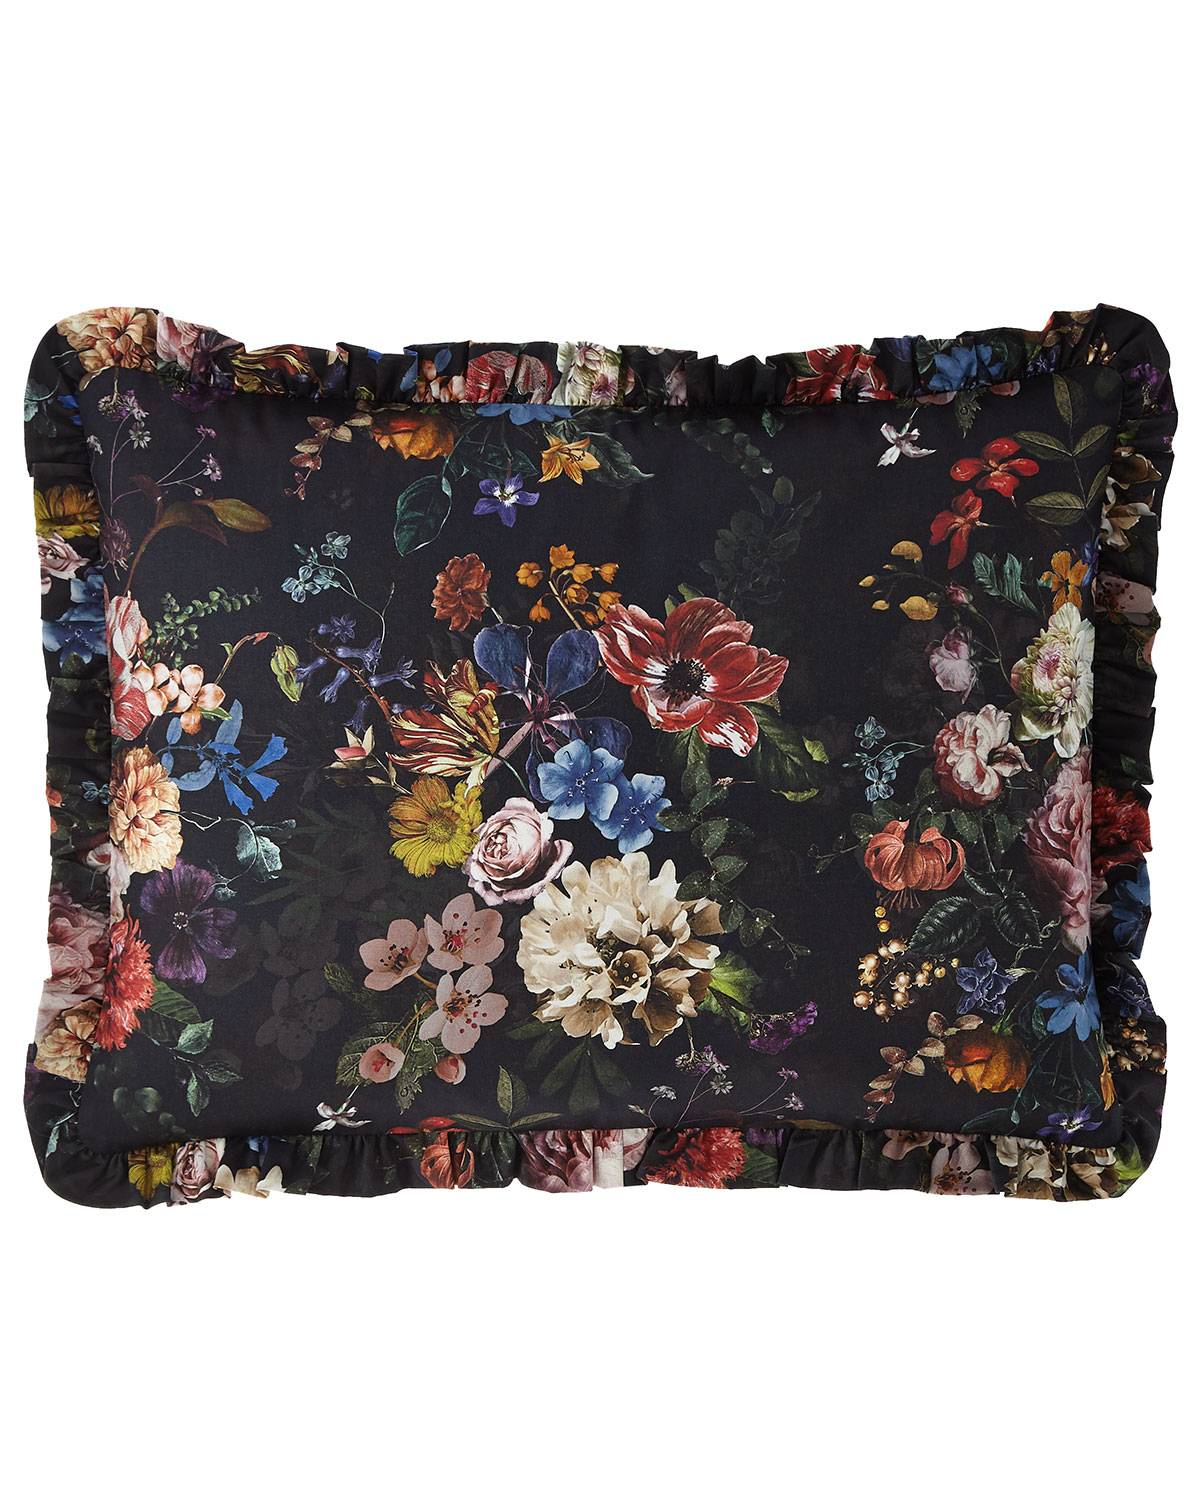 Sweet Dreams Midnight Garden Ruffled Standard Sham